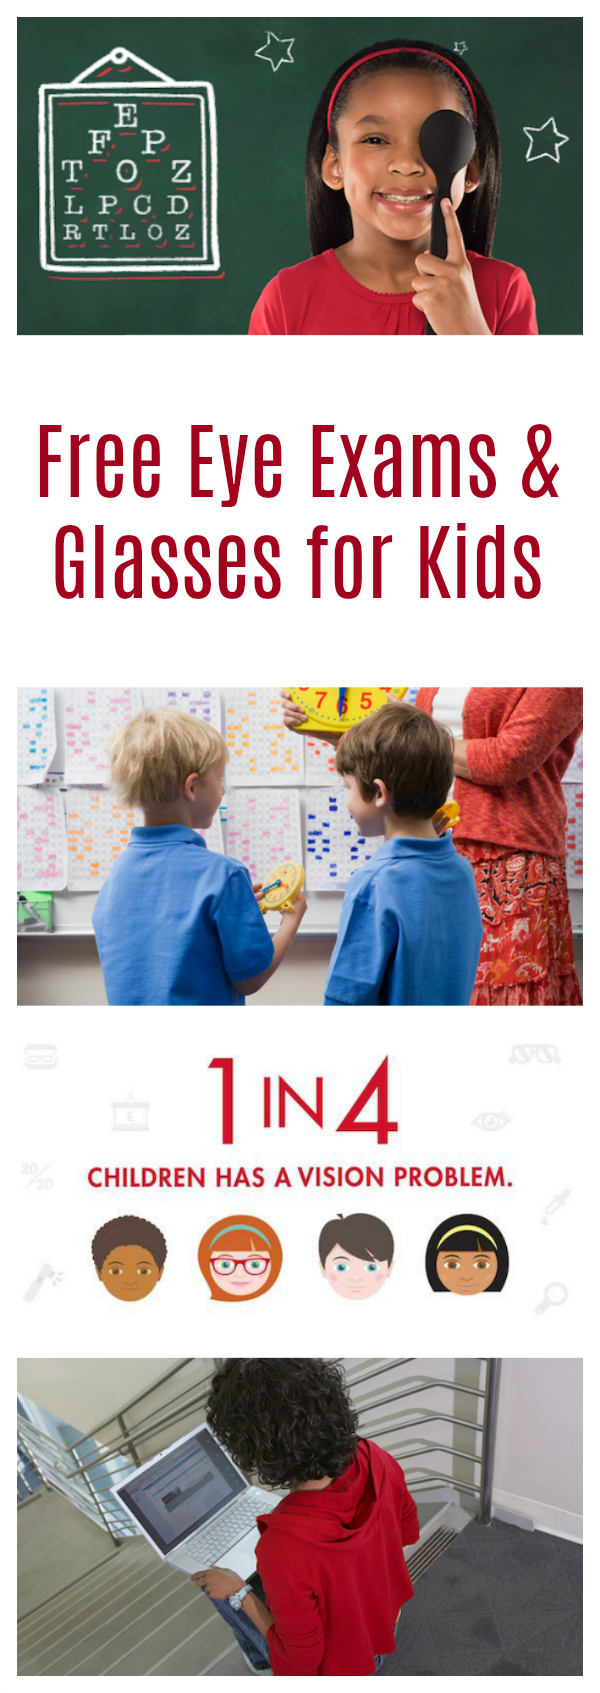 See how to apply for Free Eye Exams and Glasses for Kids in Need with the Let's Go See program from Visionworks!